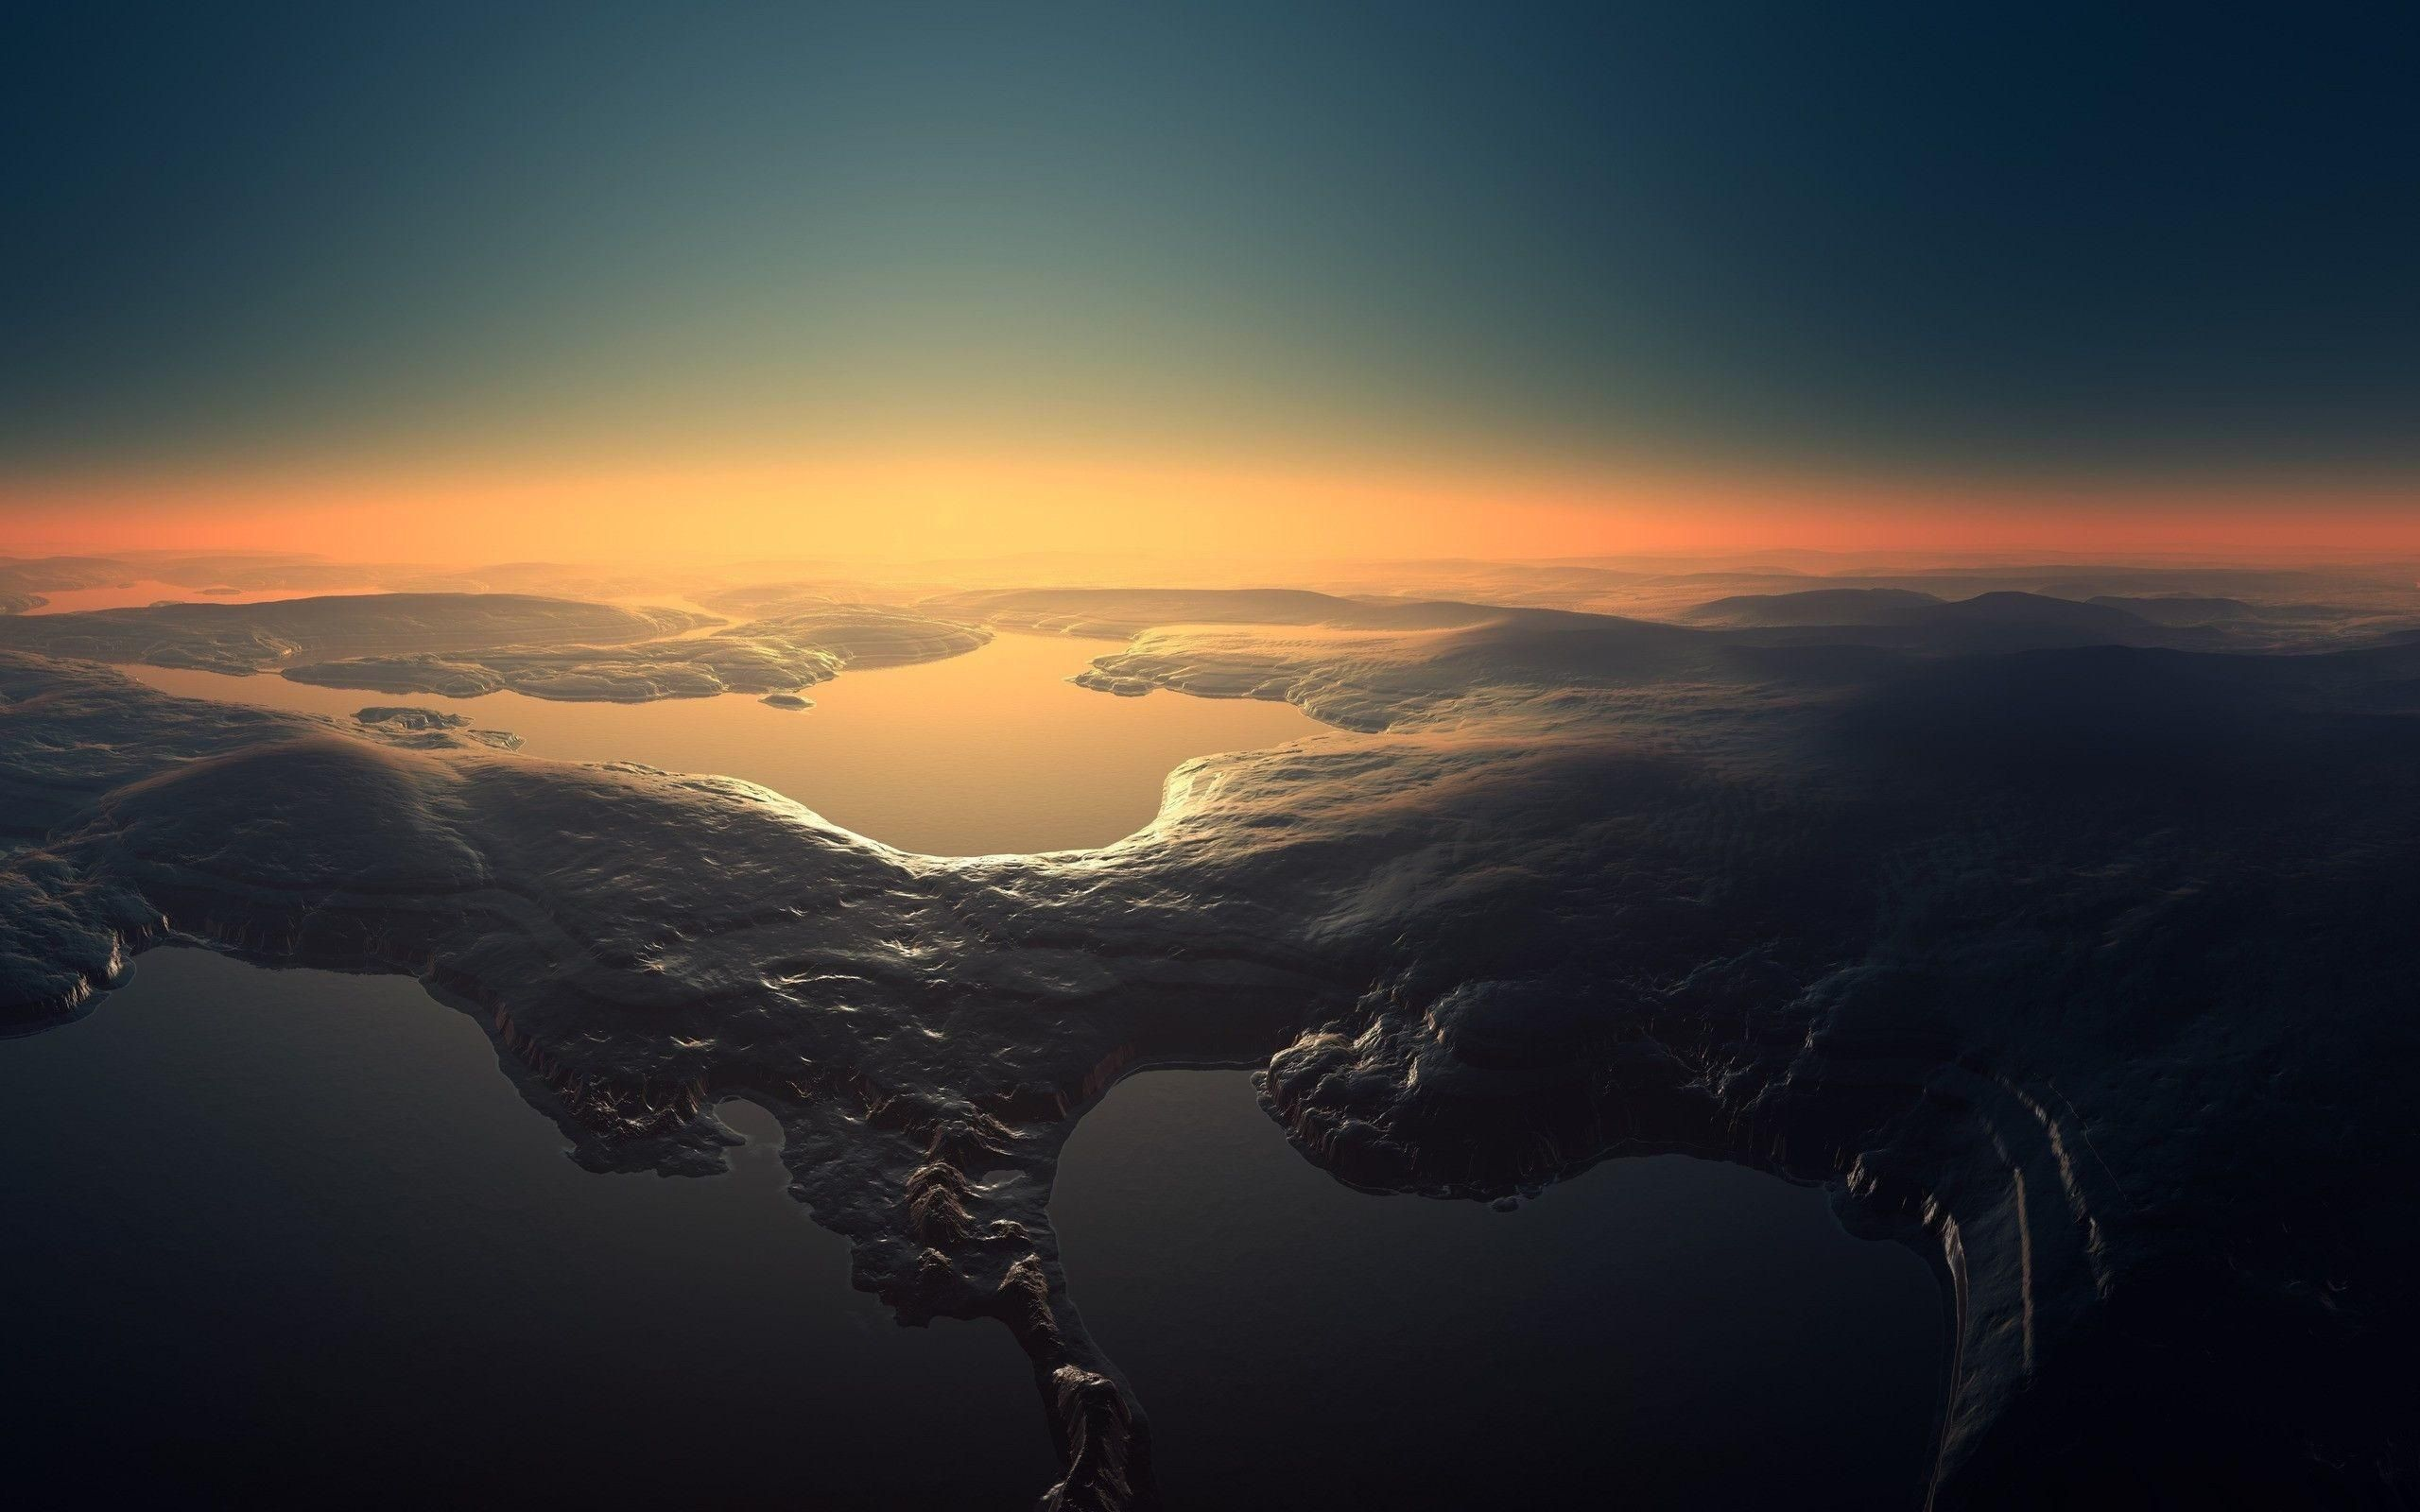 Such A Cool View And A Satisfying Wallpaper Macbook Pro Wallpaper Retina Wallpaper Imac Wallpaper